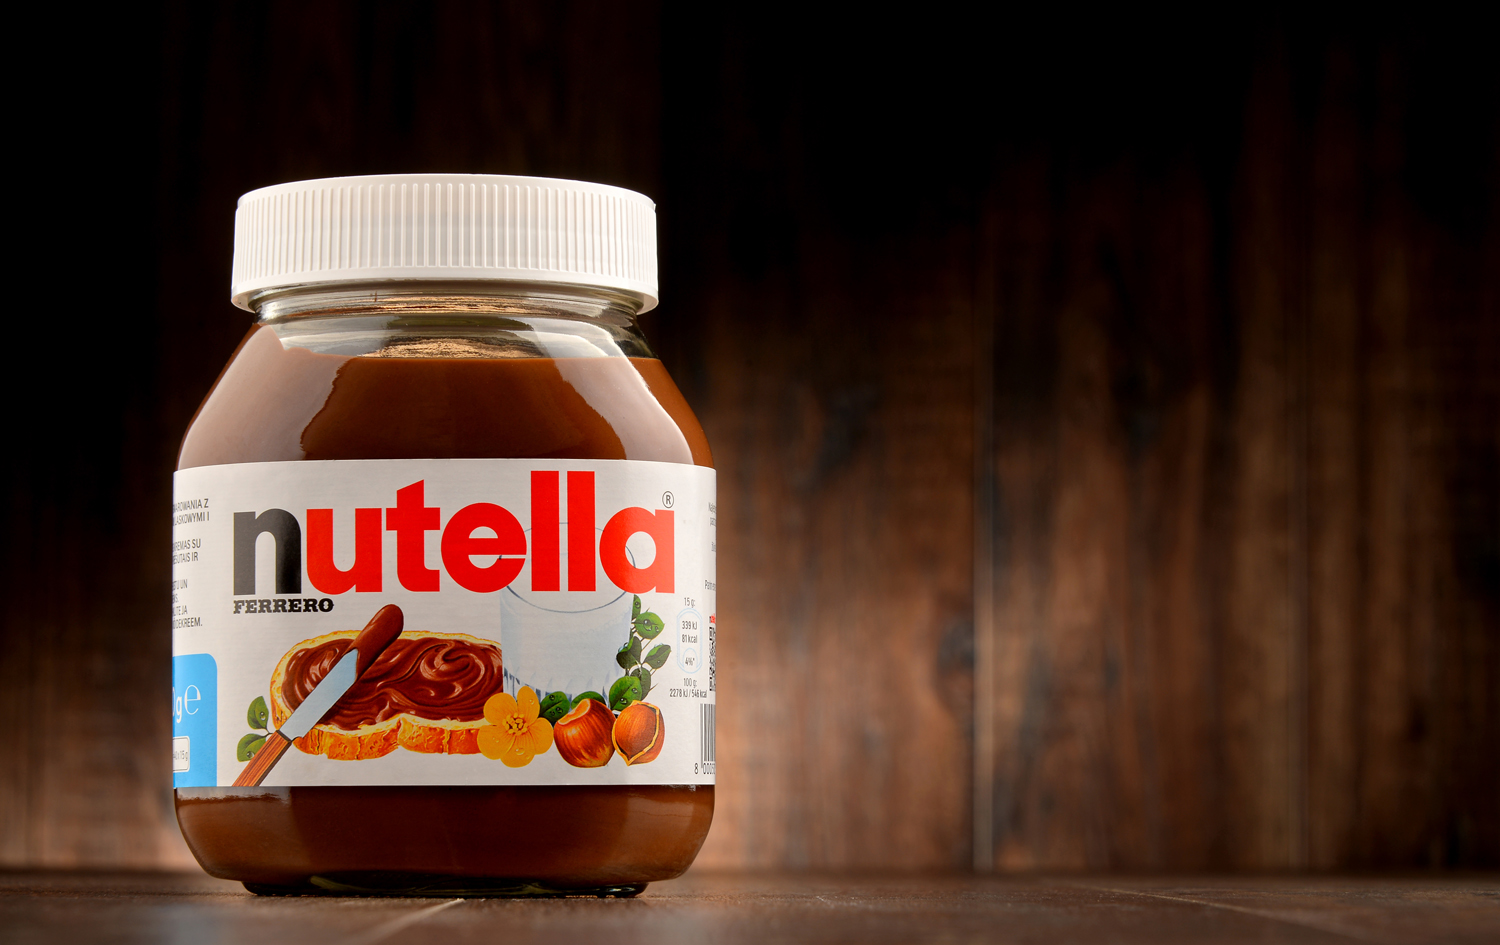 nutella-referencement-explication-ouverture